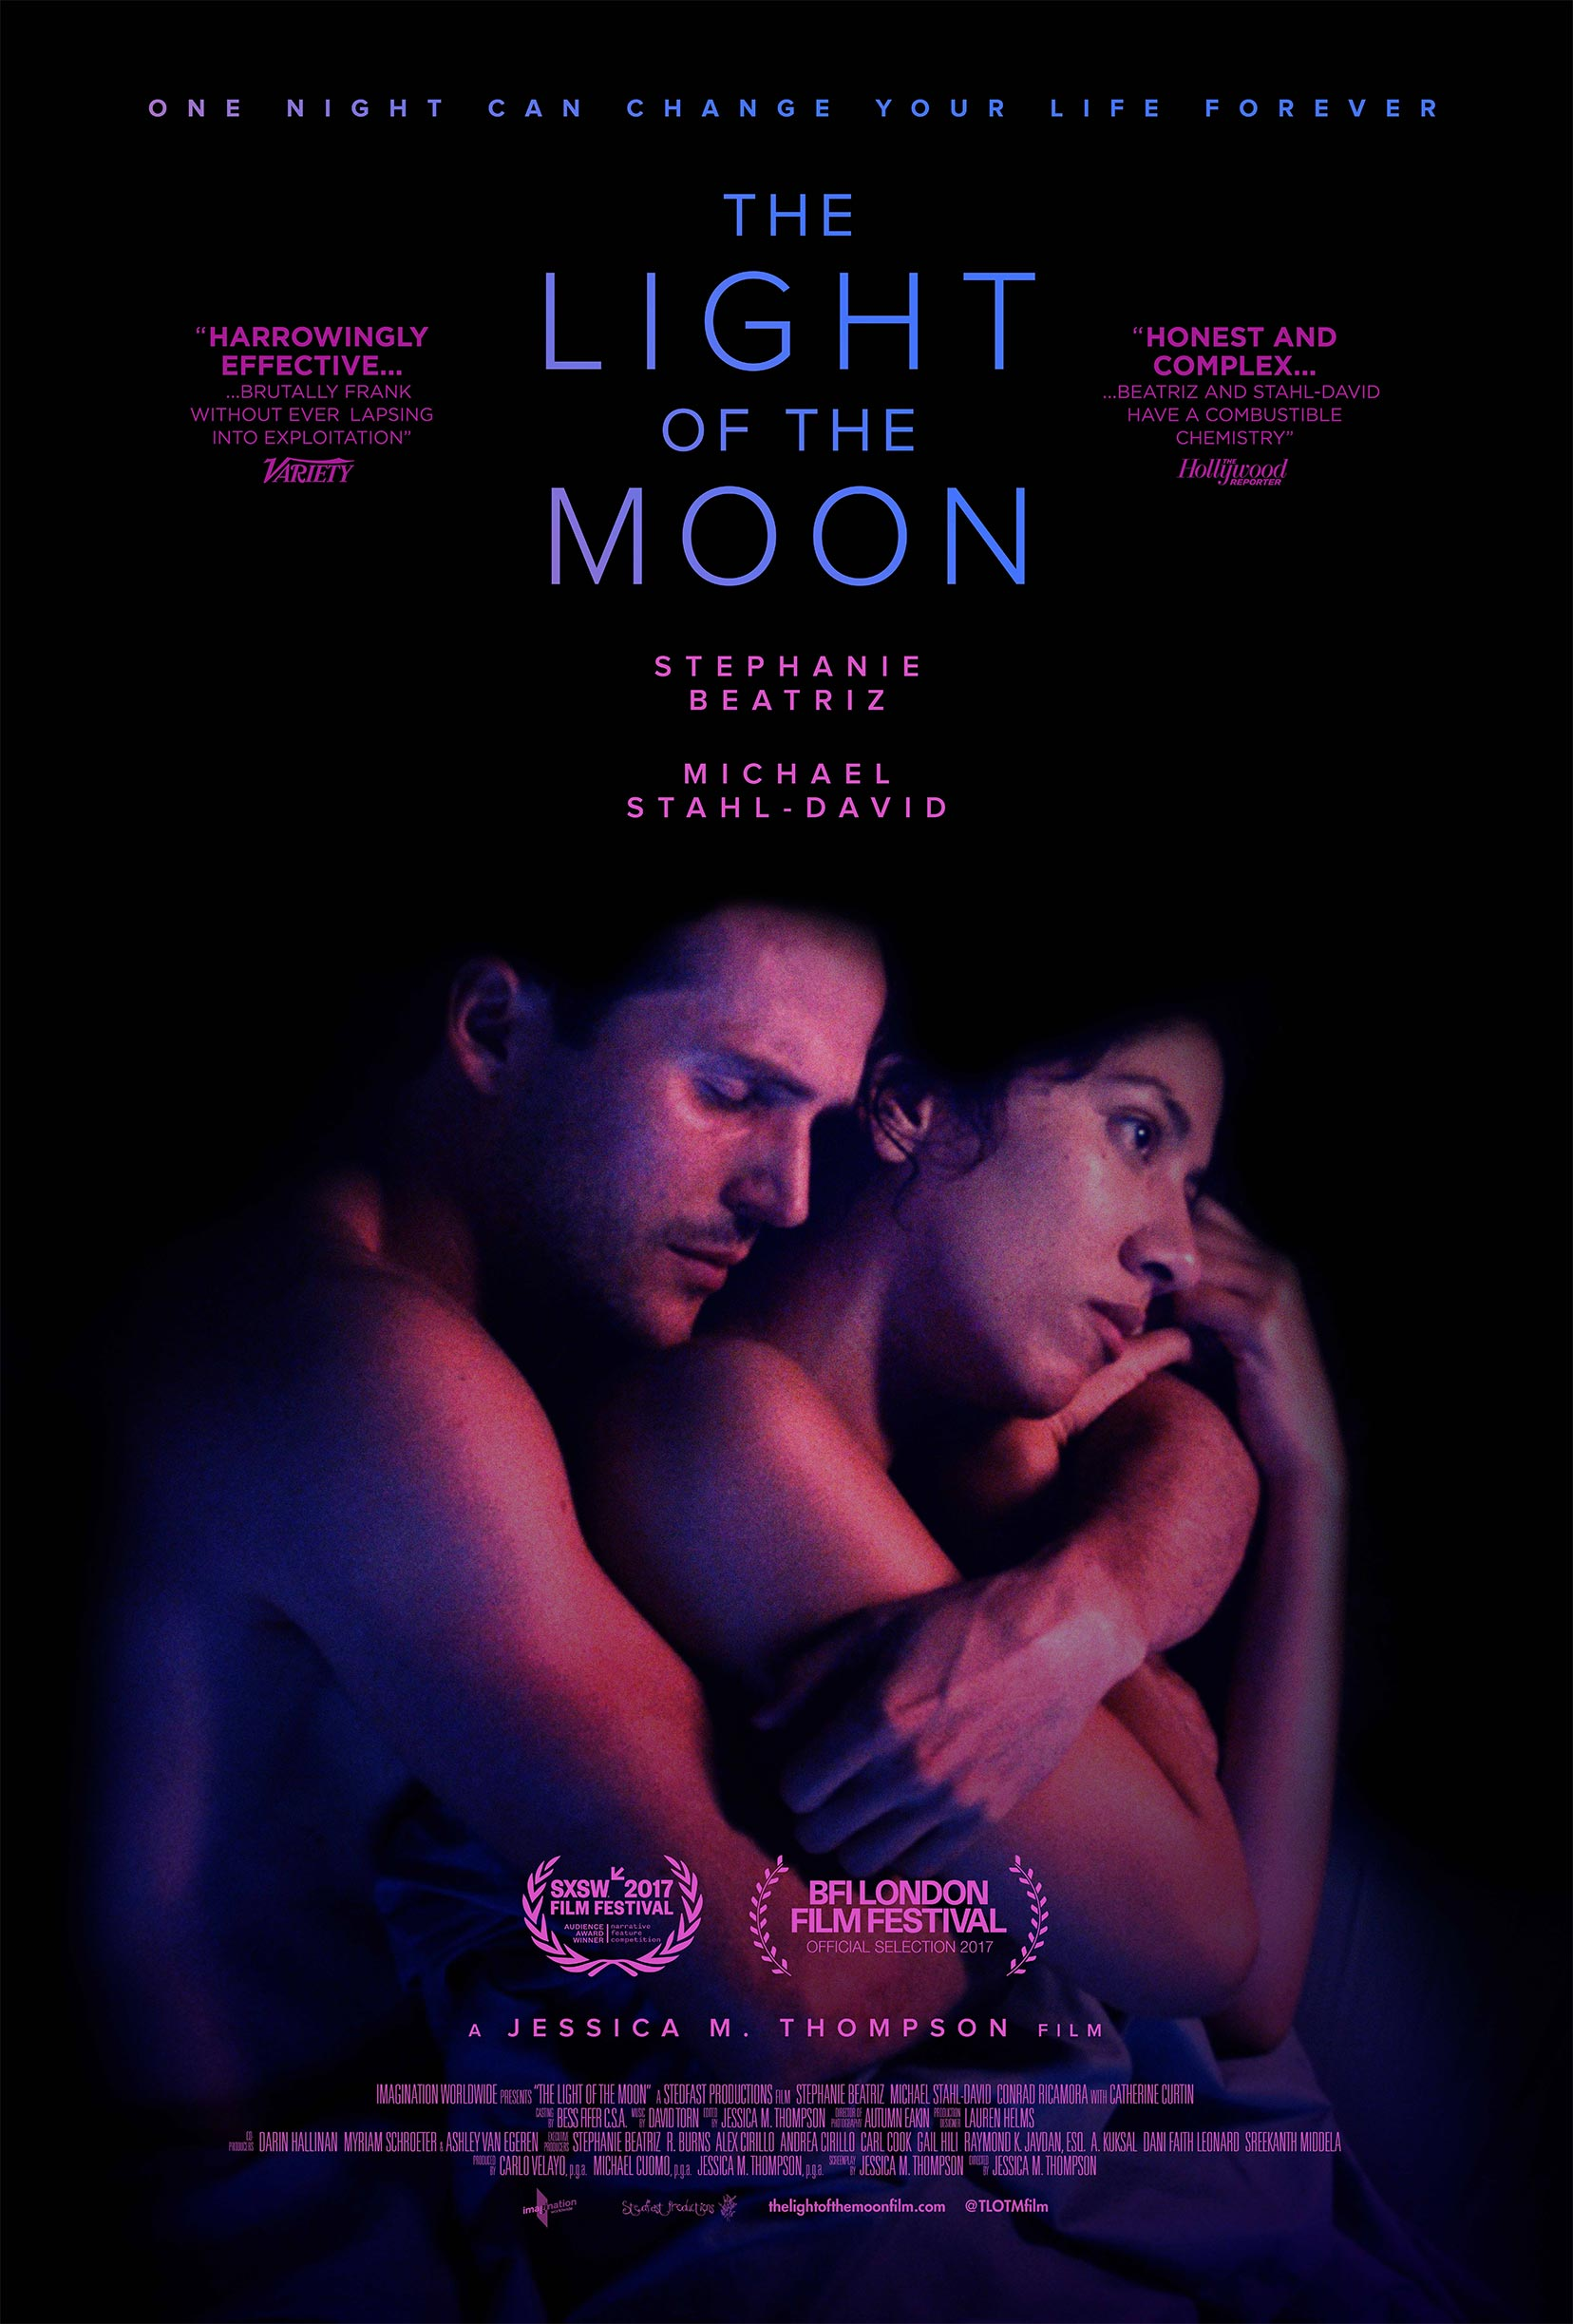 light-of-the-moon-poster.jpg